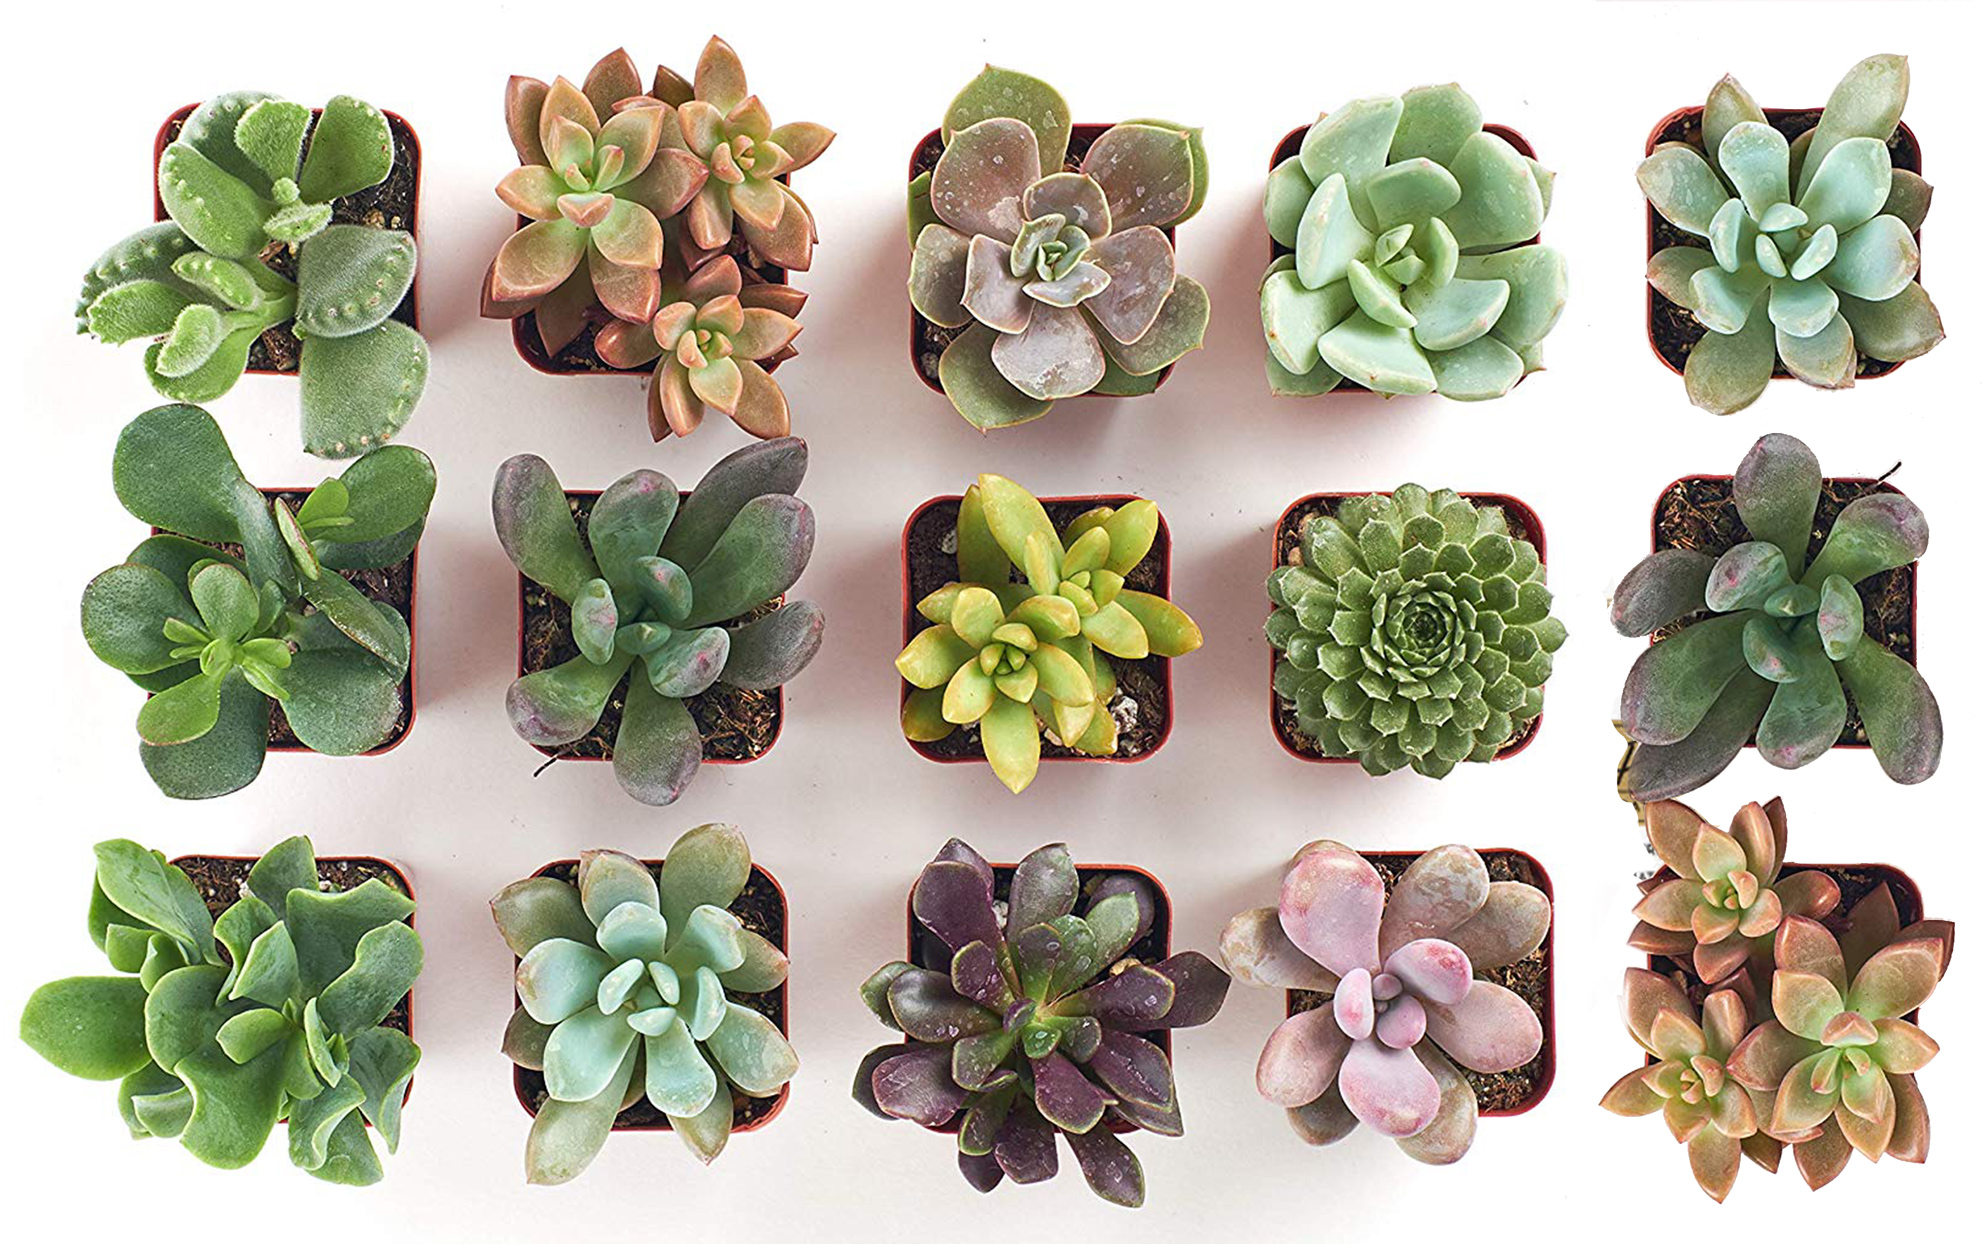 several small succulent plants on a white background shot from overhead